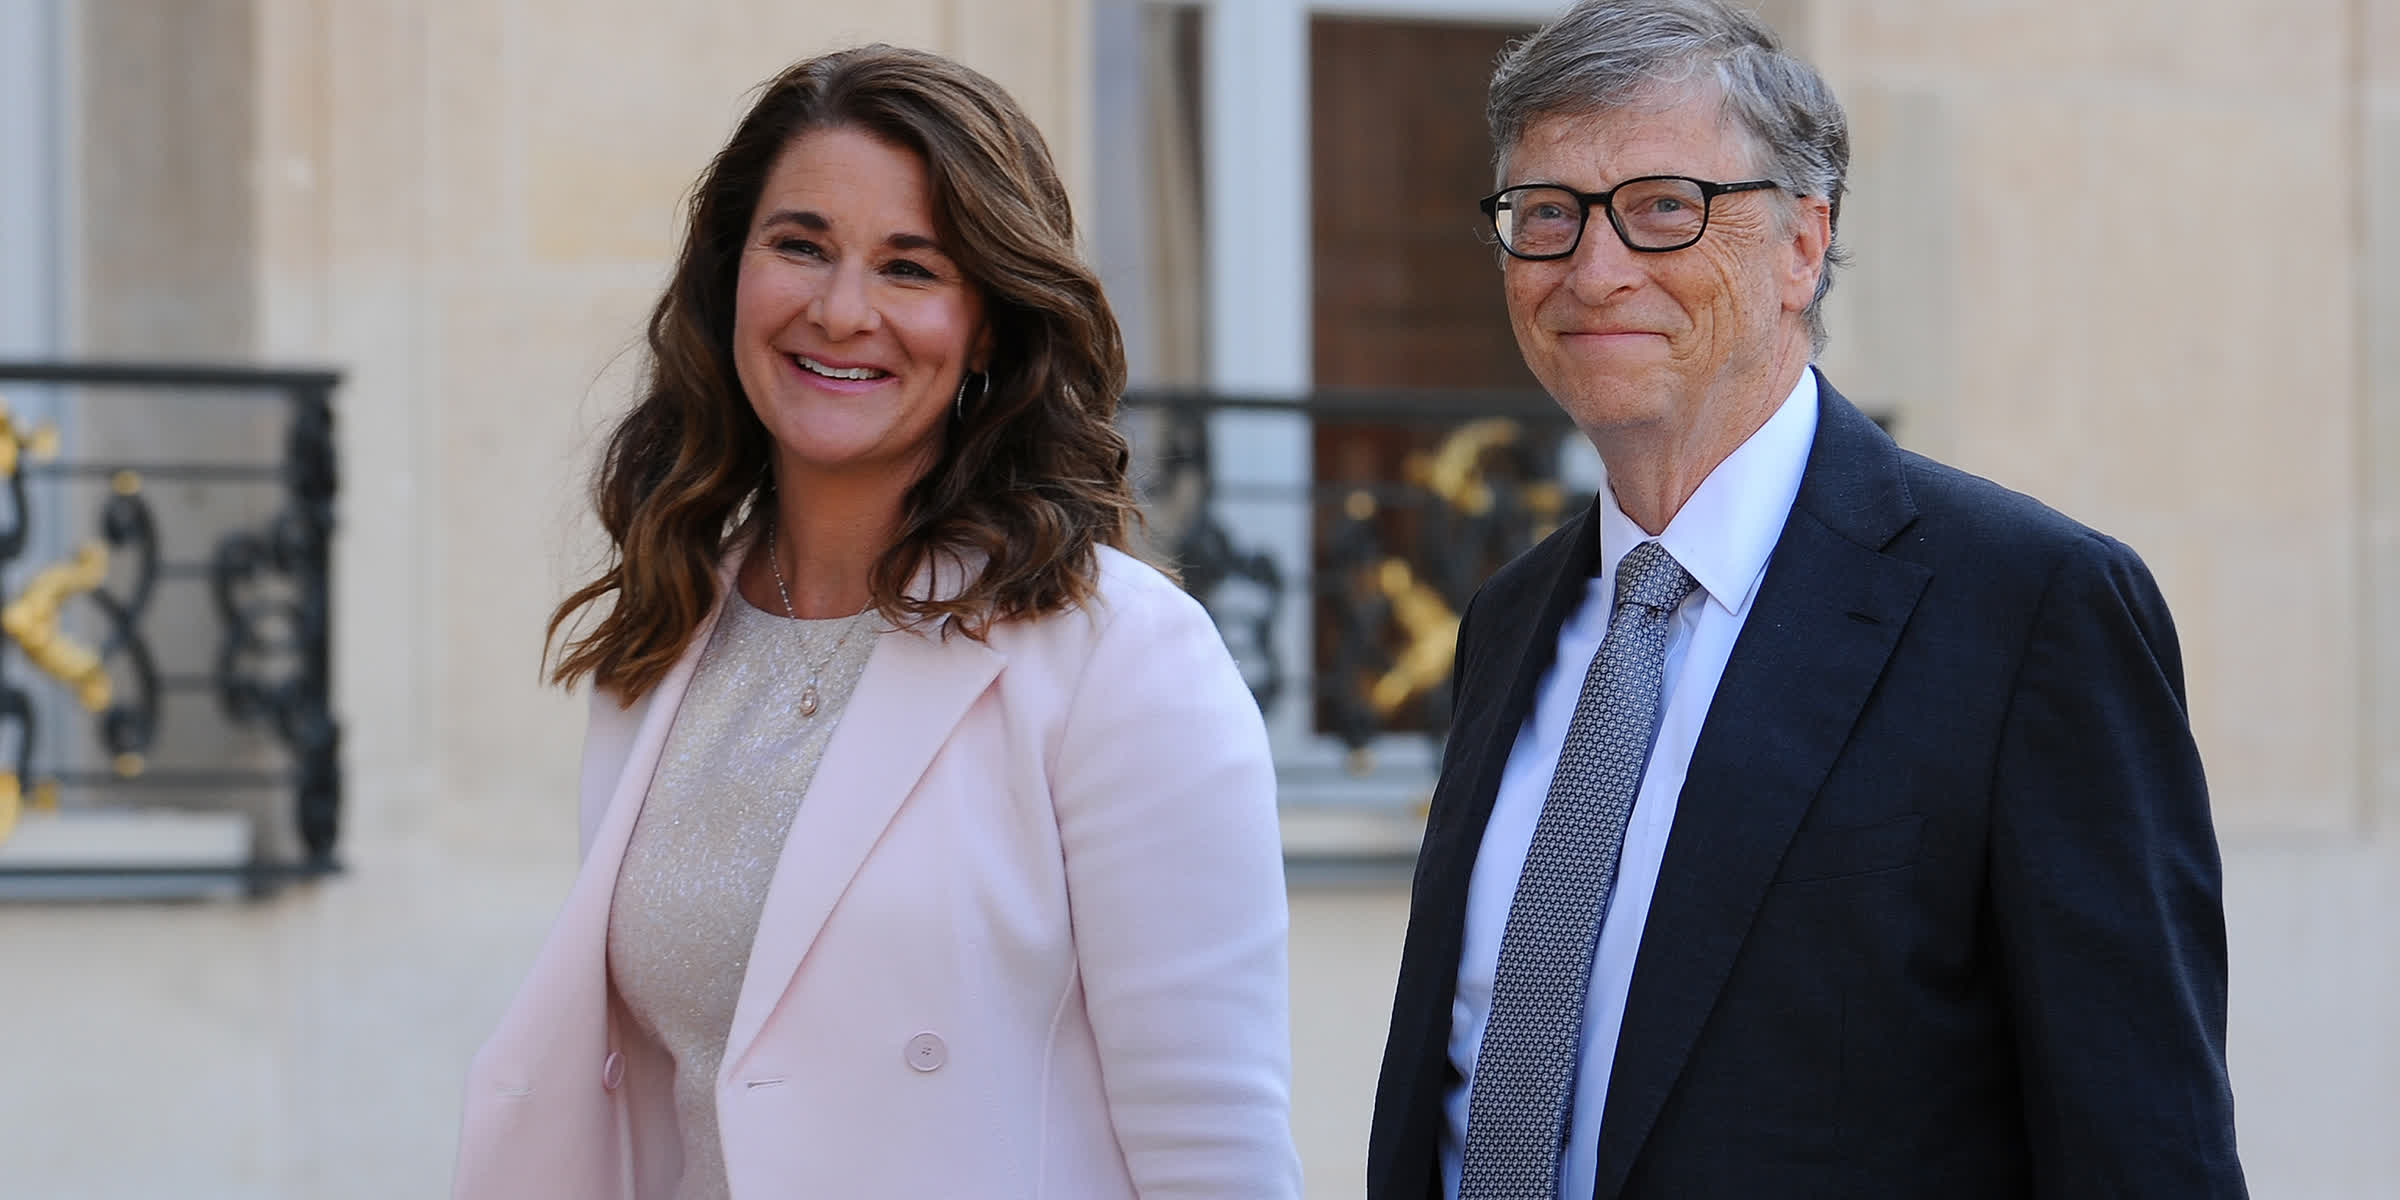 Melinda French Gates will resign in two years if she and Bill Gates can't work together at foundation